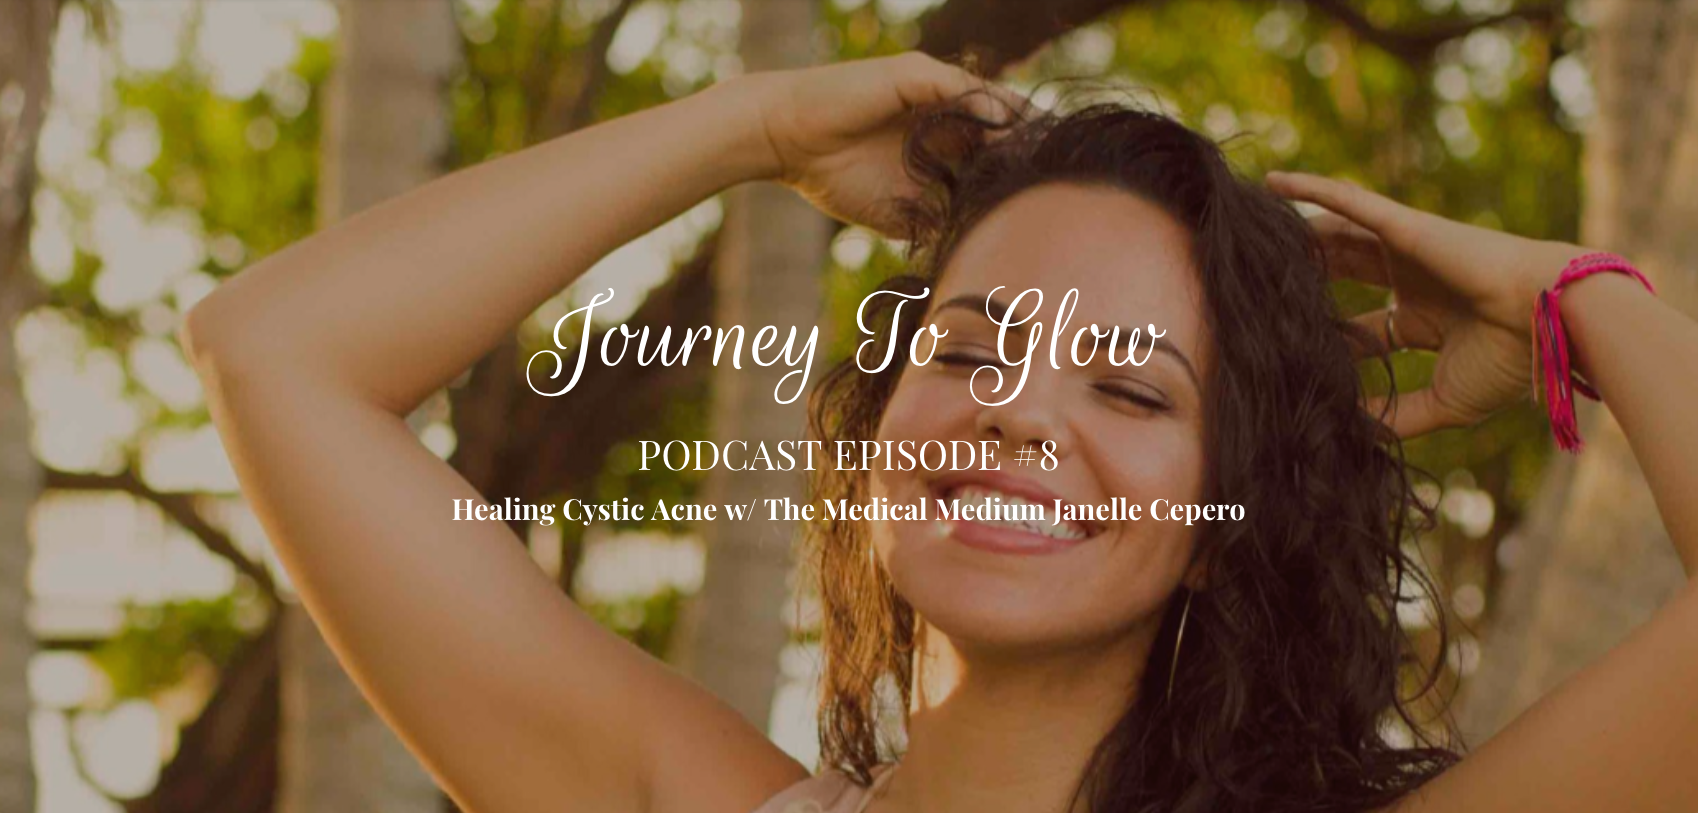 JTG #8 Heal Cystic Acne W/ The Medical Medium - Journey To Glow